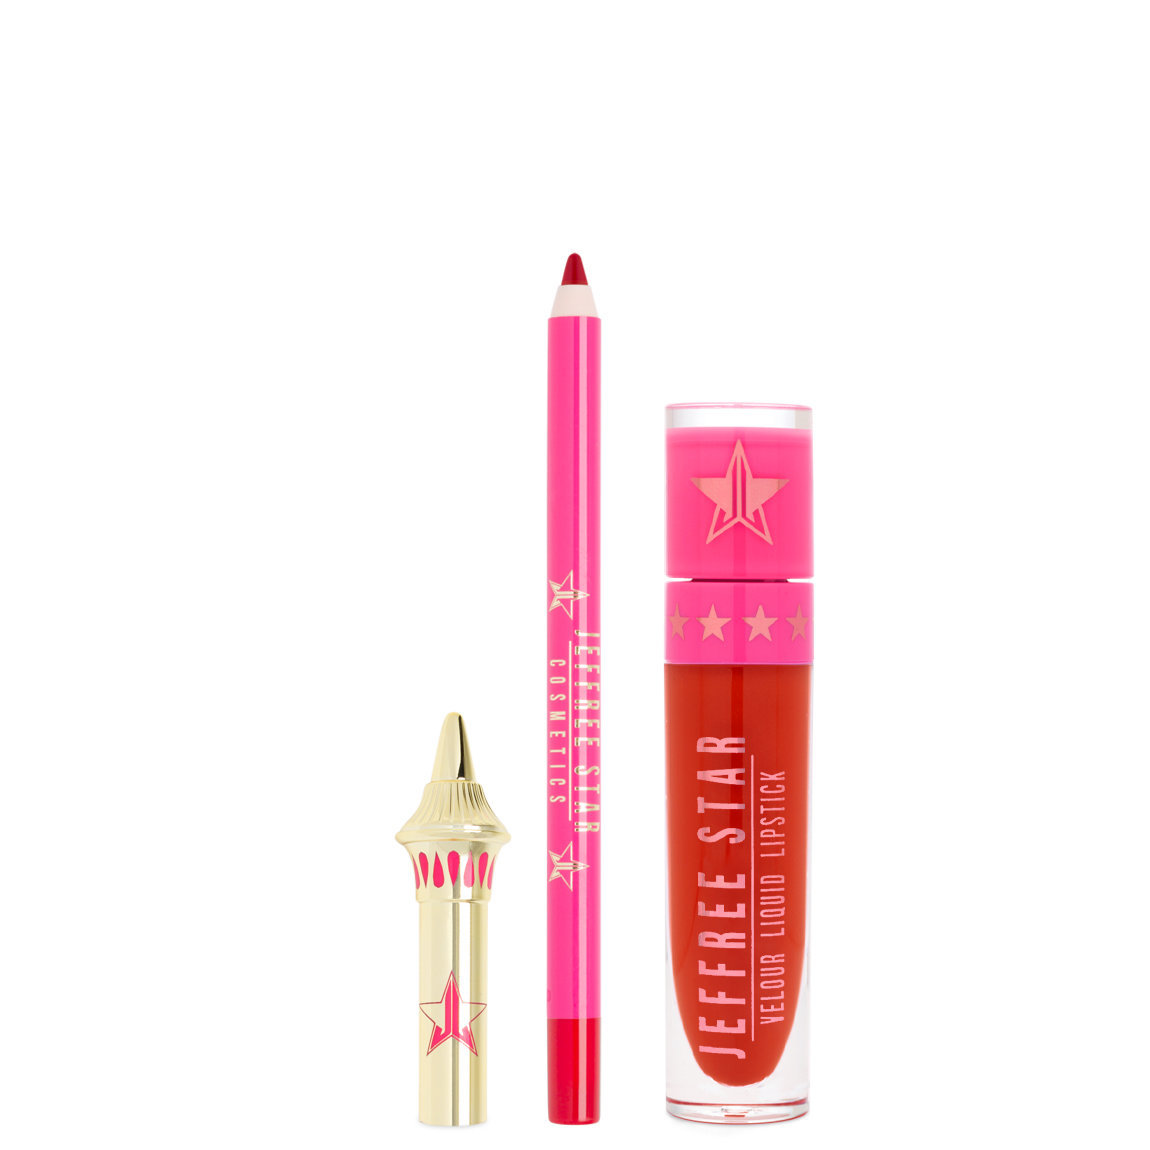 Jeffree Star Cosmetics Velour Lip Kit Redrum alternative view 1.